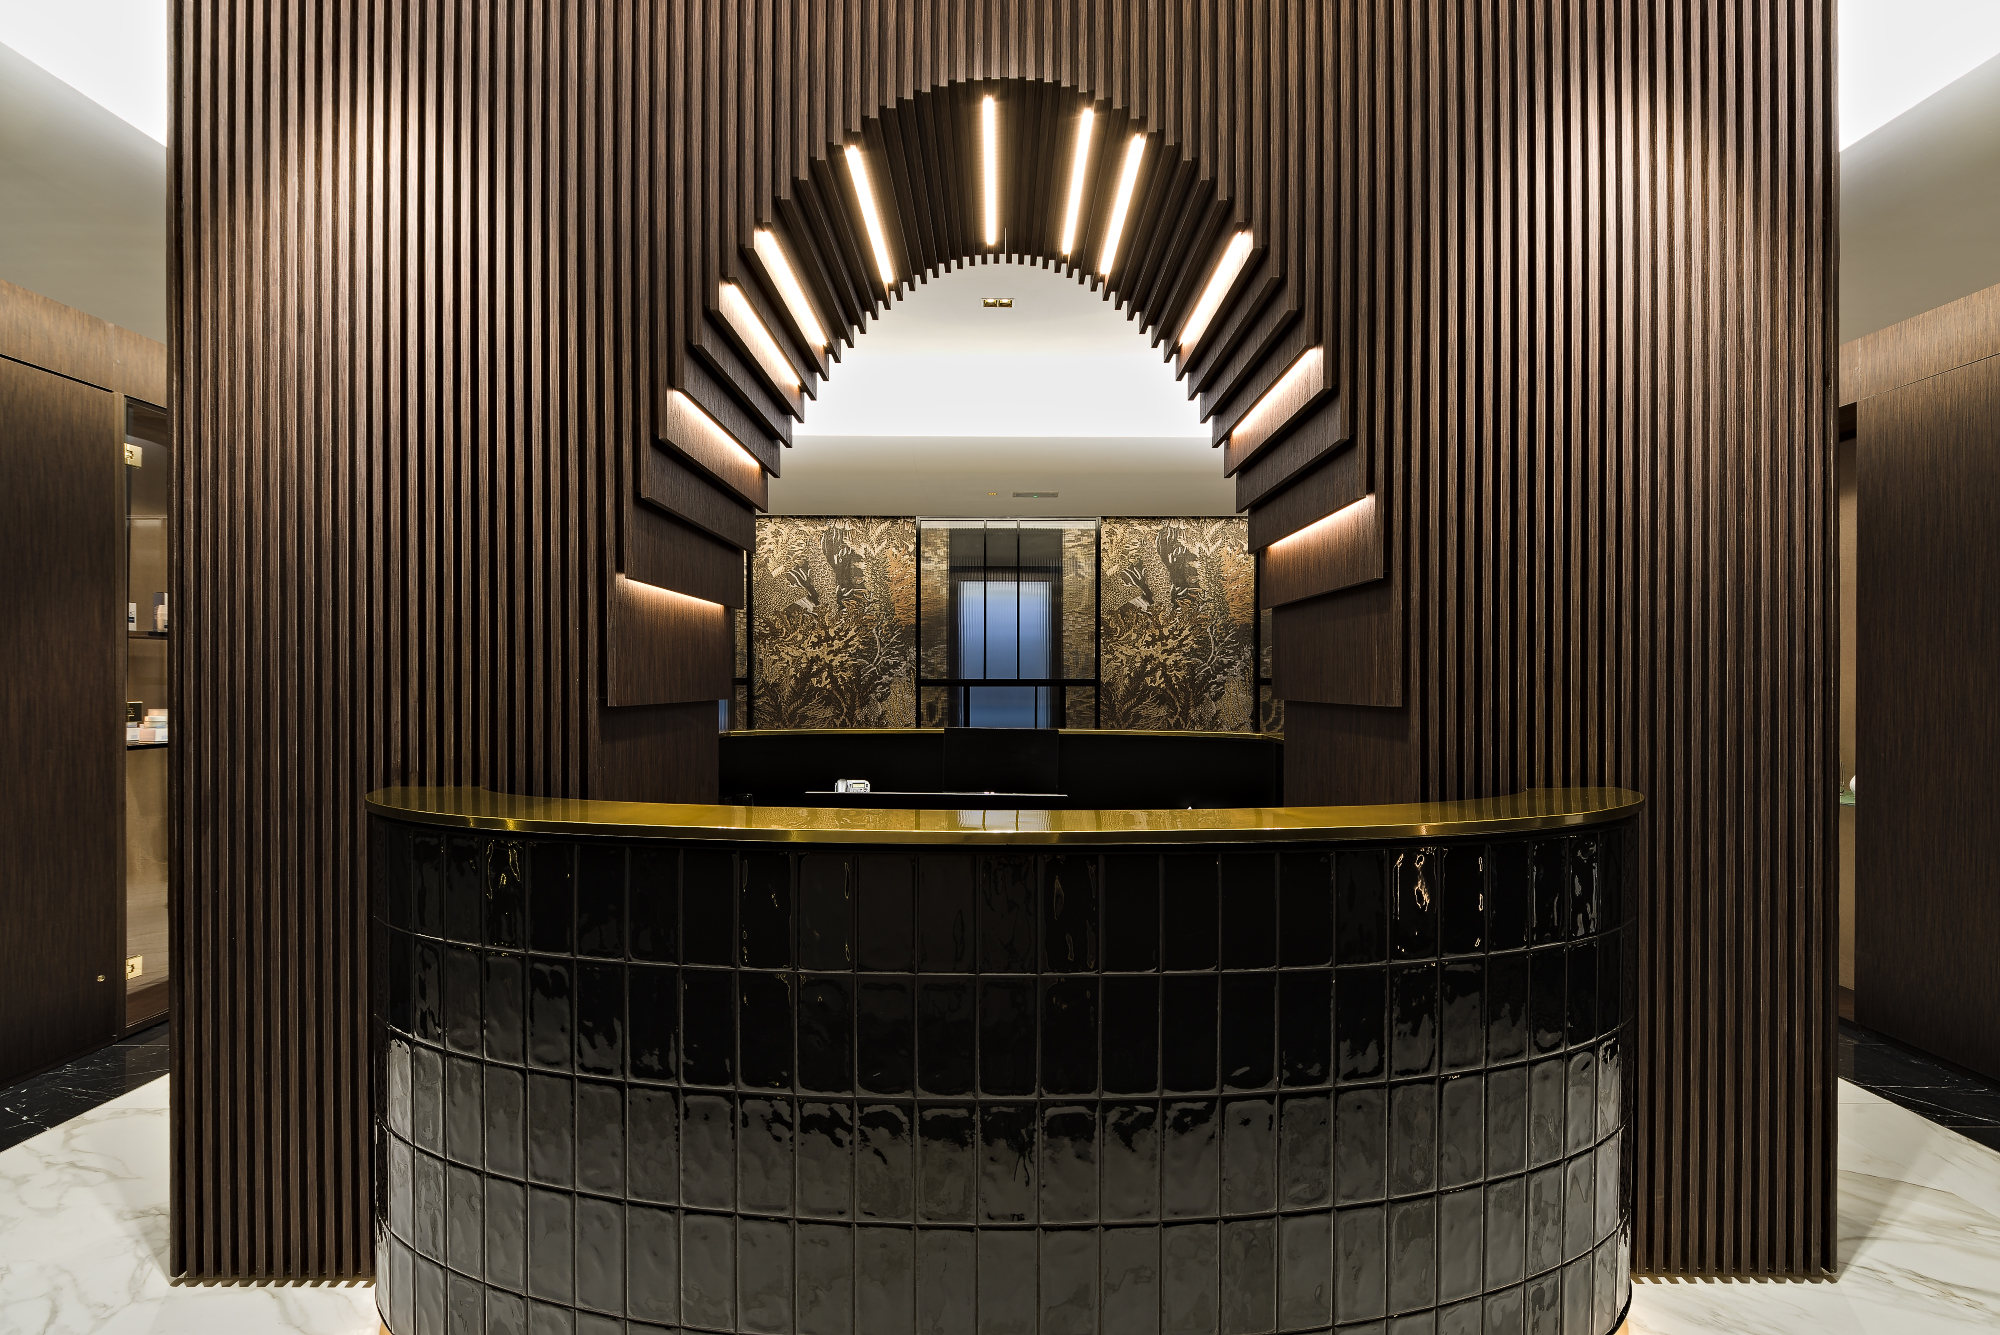 Reception desk with black ceramic tiles, wood arc and brass finishes